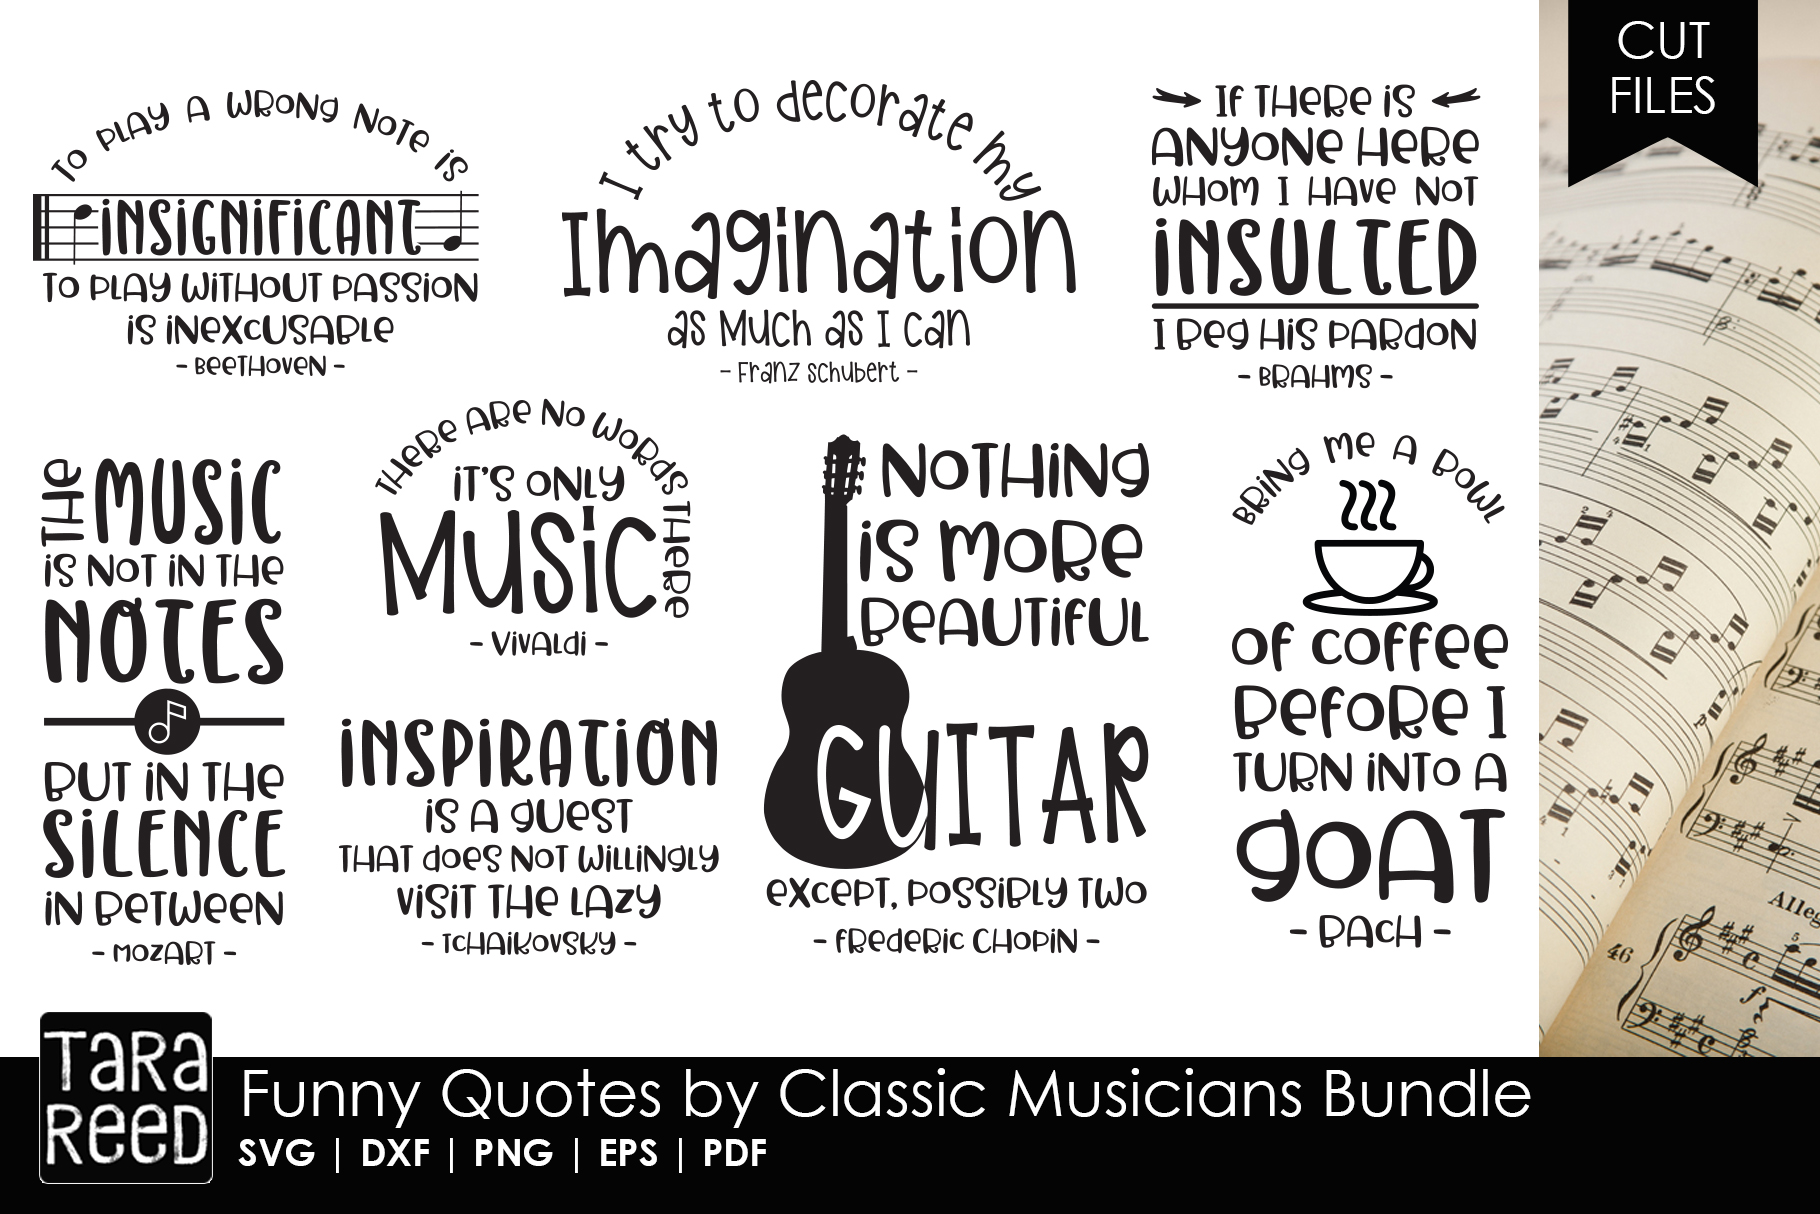 Funny Quotes by Classic Musicians Bundle